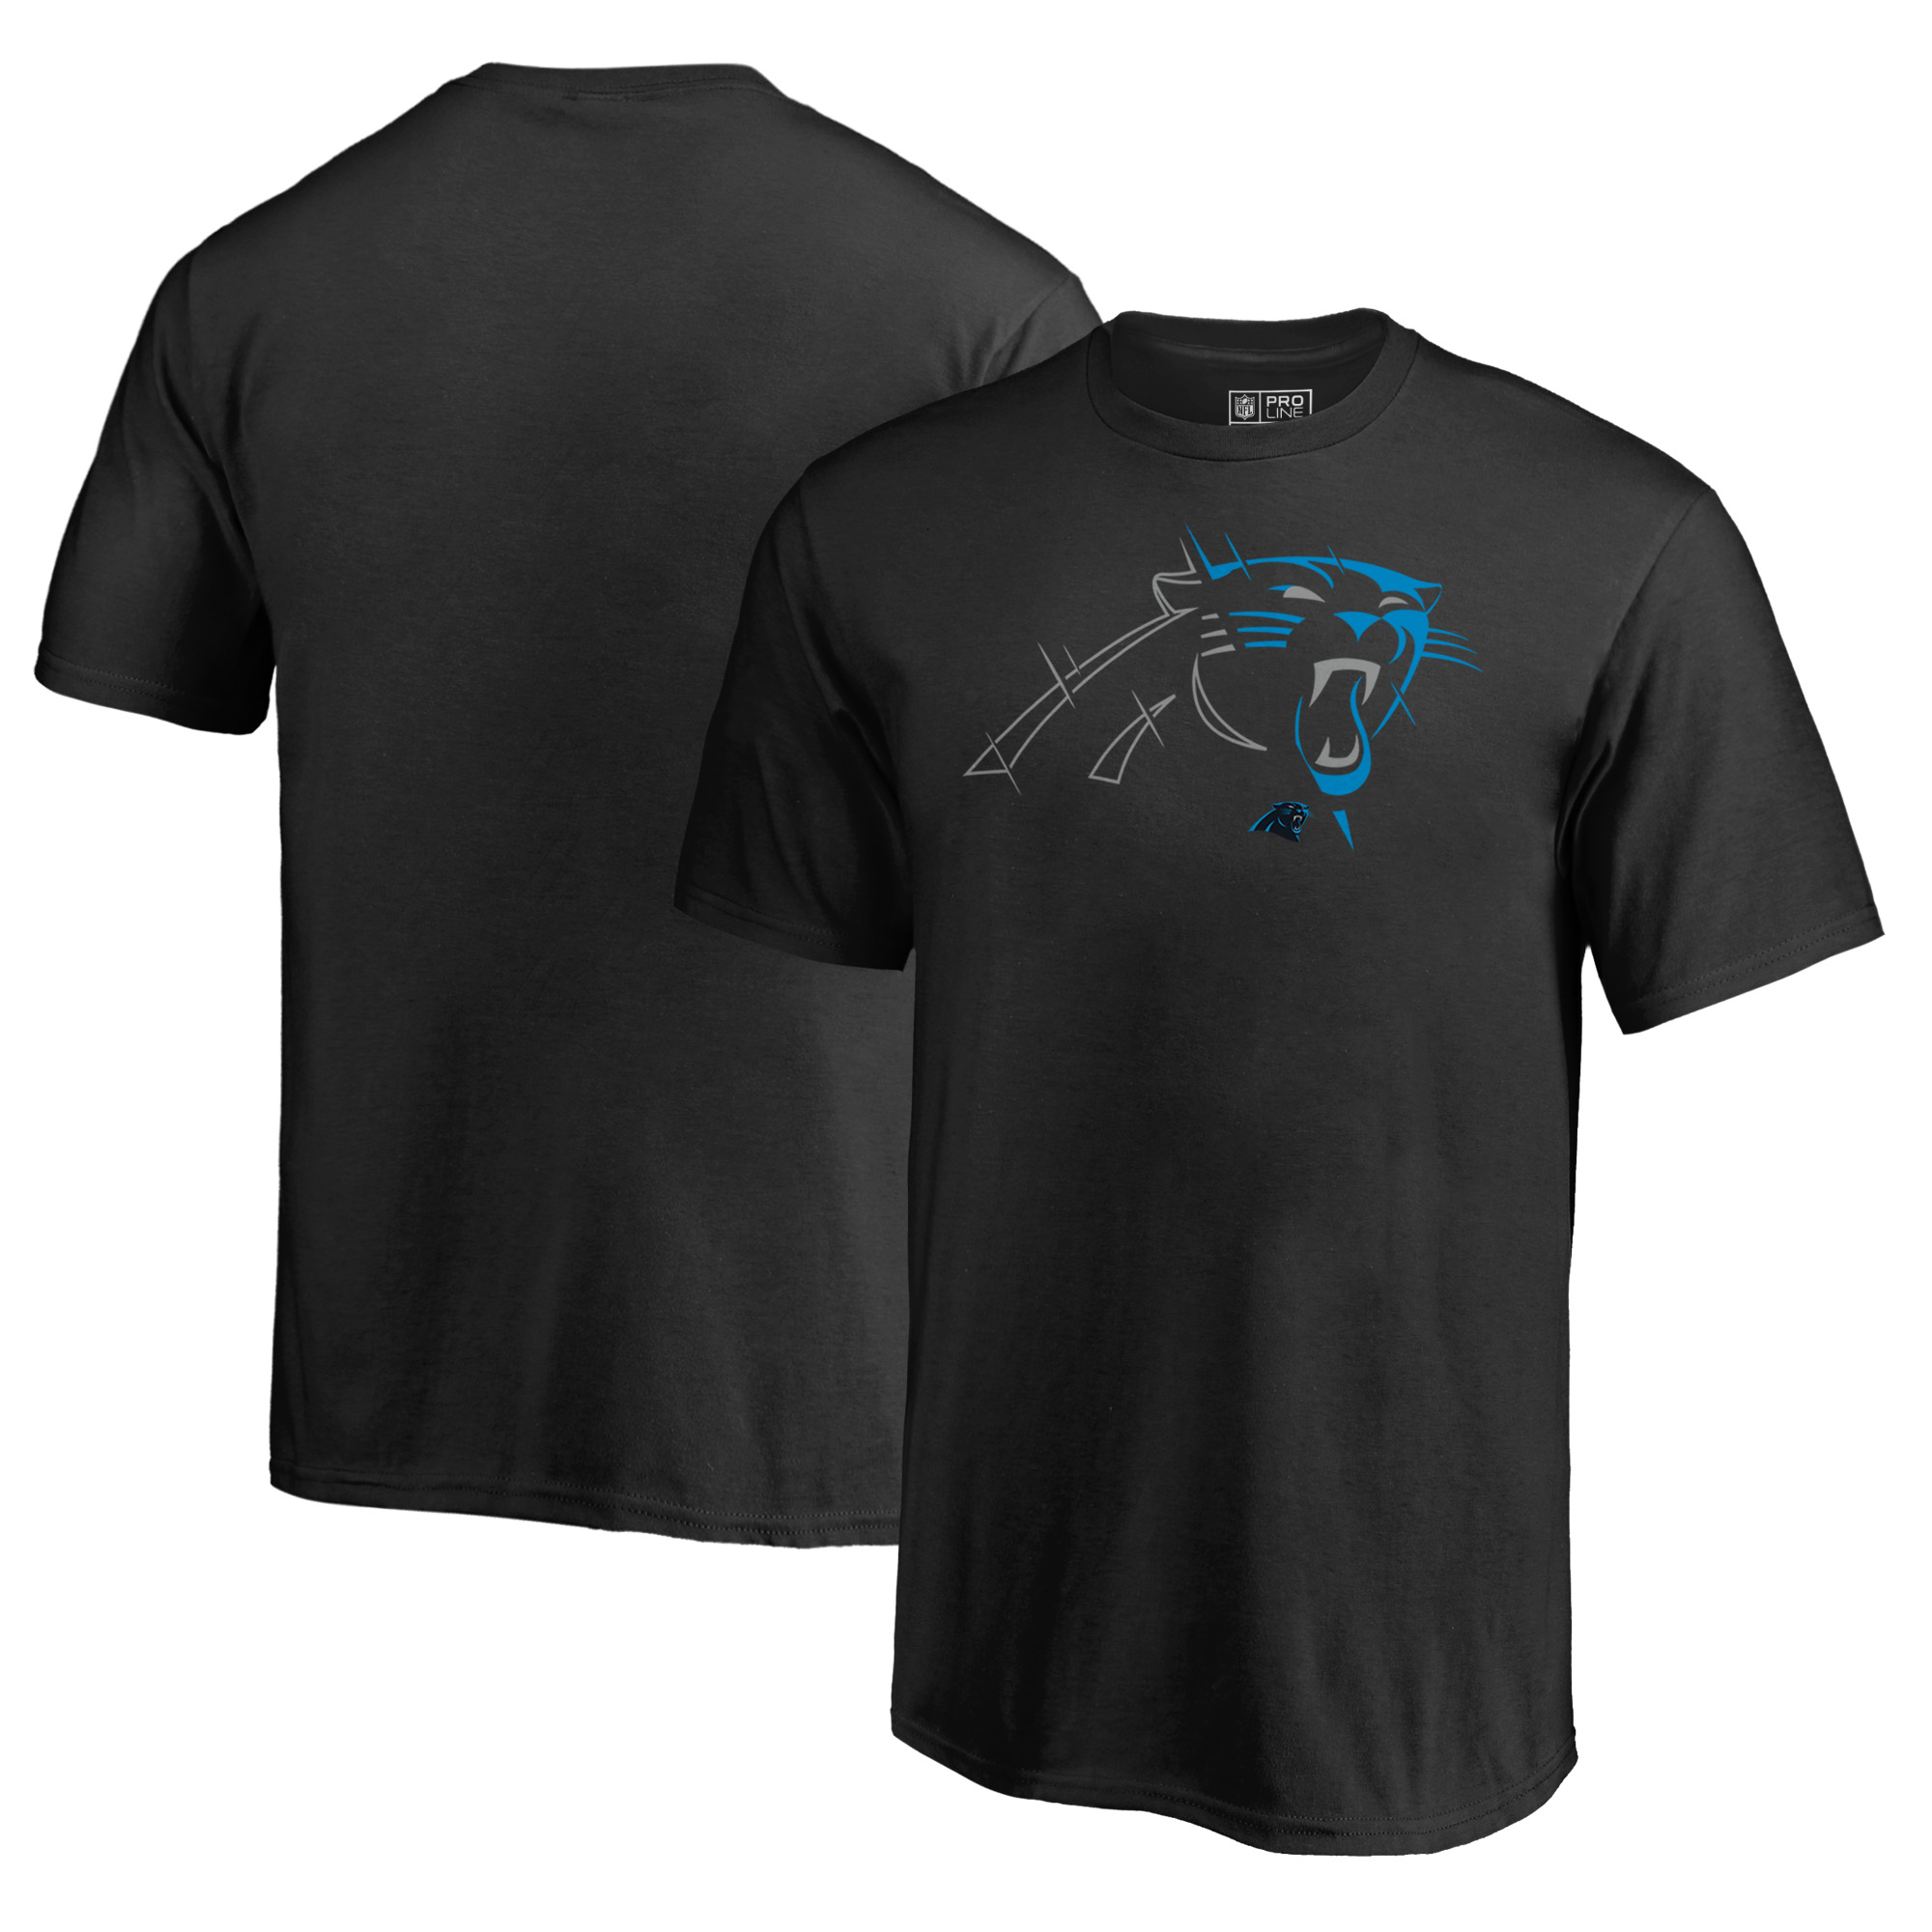 Carolina Panthers NFL Pro Line by Fanatics Branded Youth X-Ray T-Shirt - Black